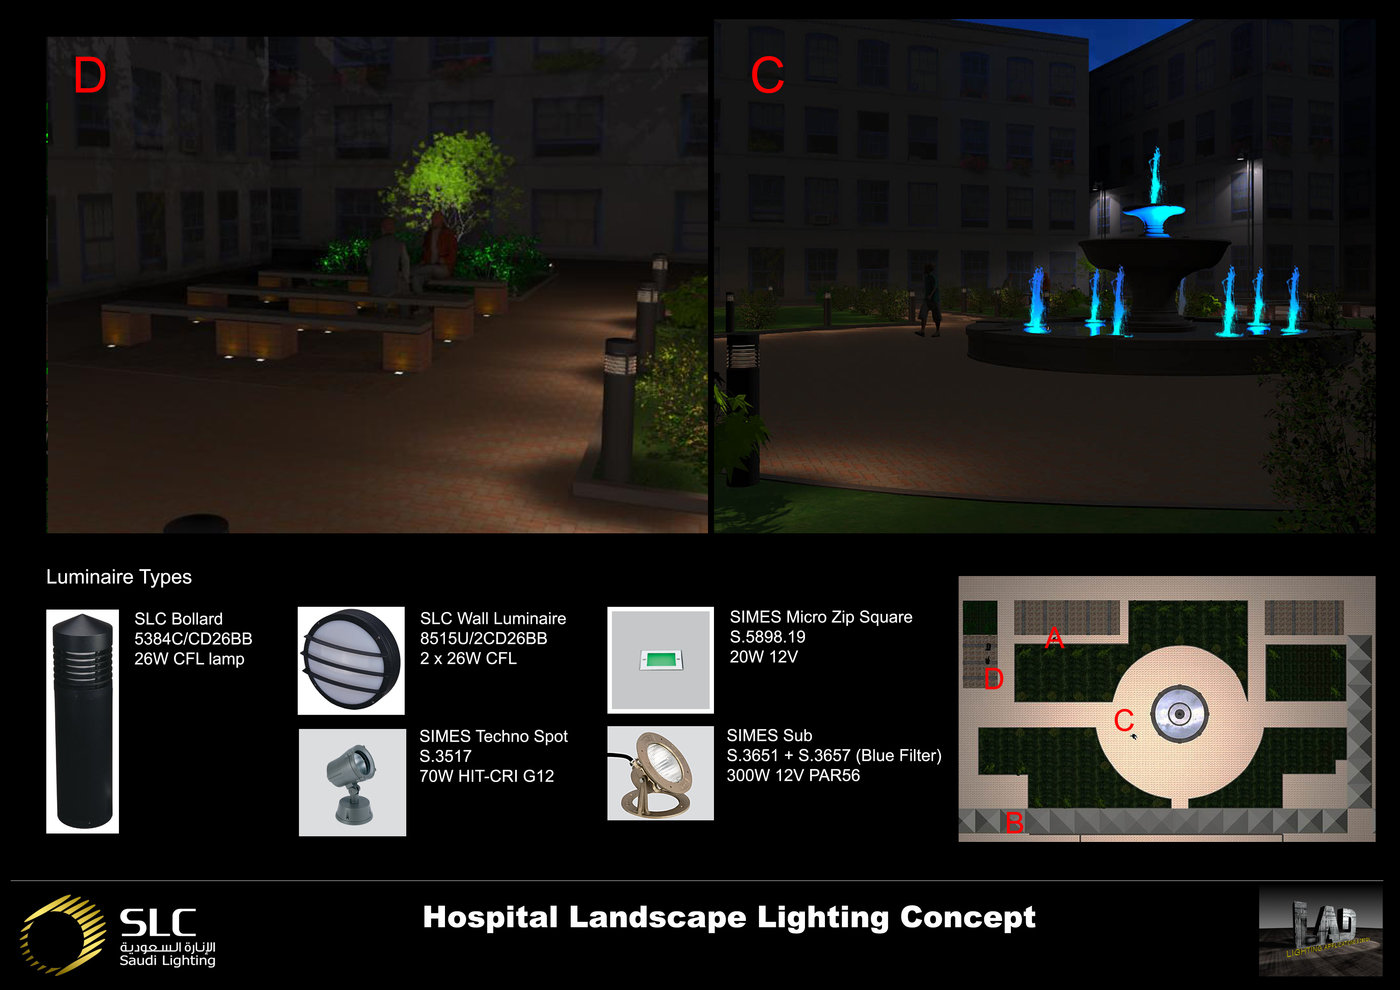 Lighting design proposal exterior by light visualizer at coroflot.com